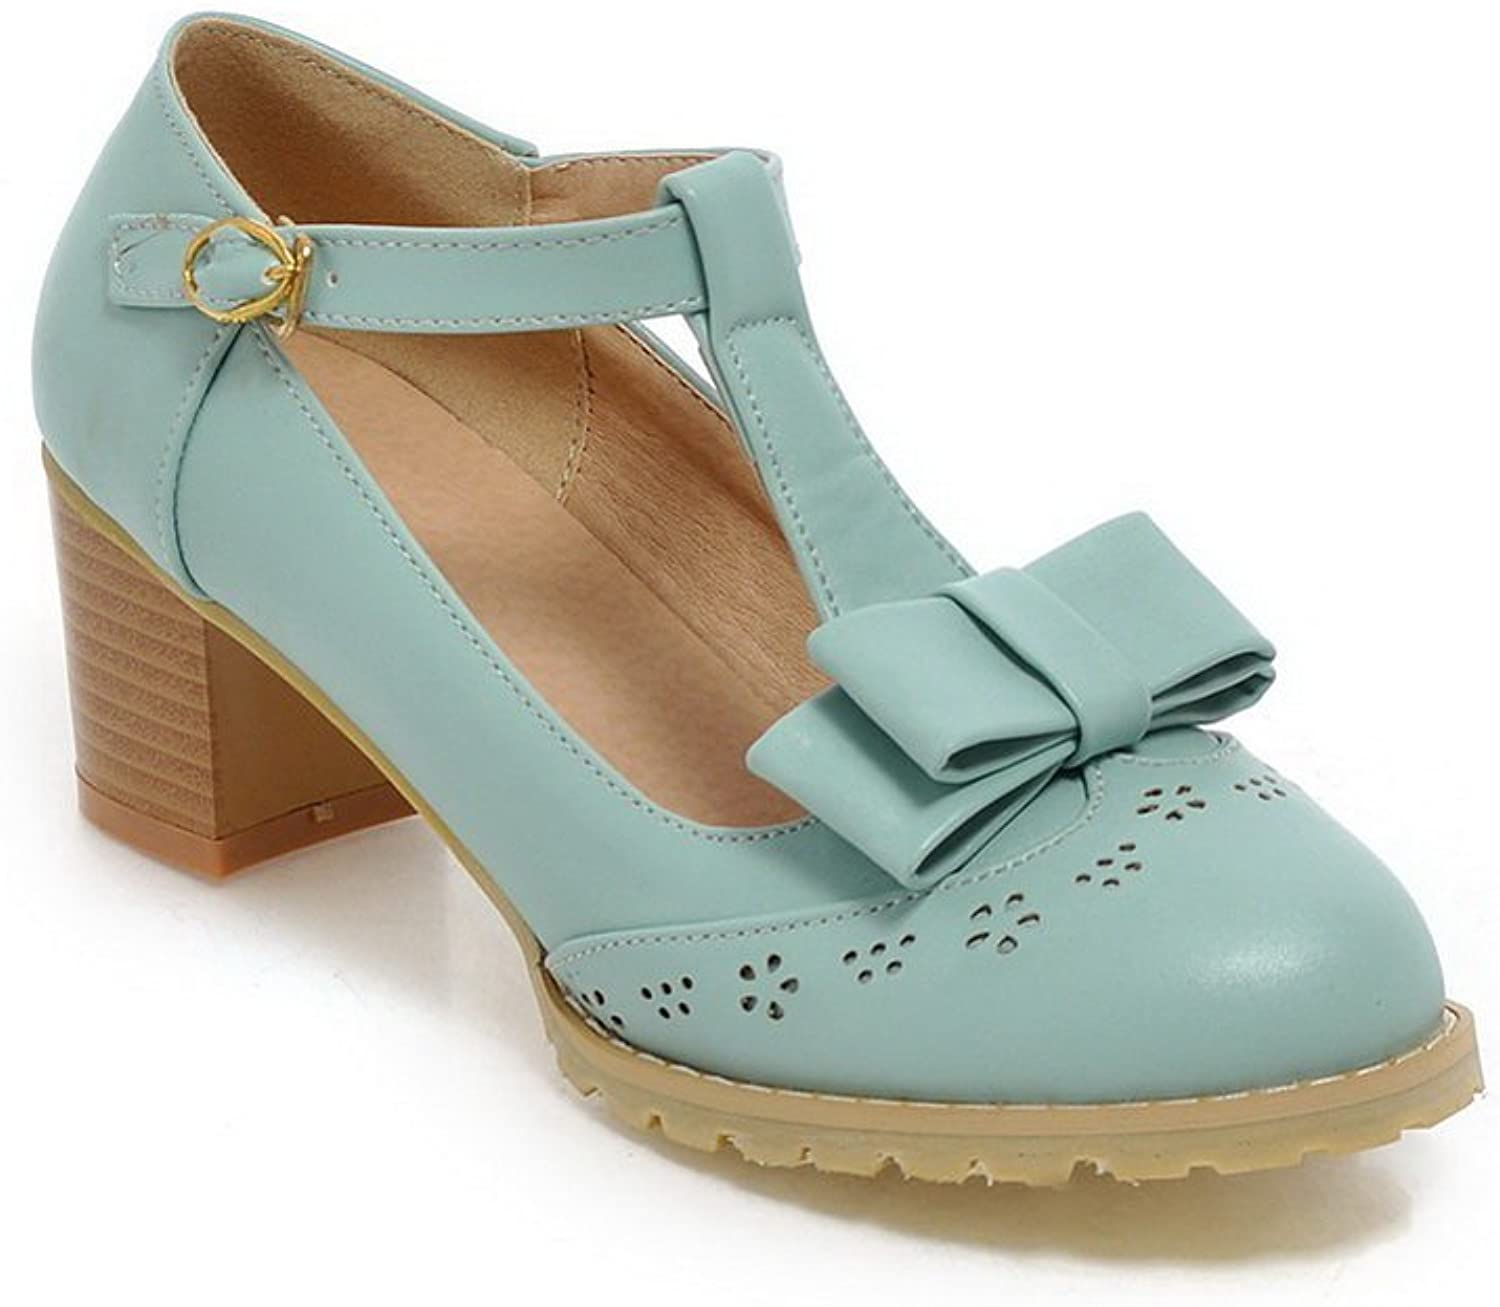 1TO9 Girls Buckle Hollow Out Round-Toe Engagement bluee Polyurethane Pumps-shoes - 7.5 B(M) US